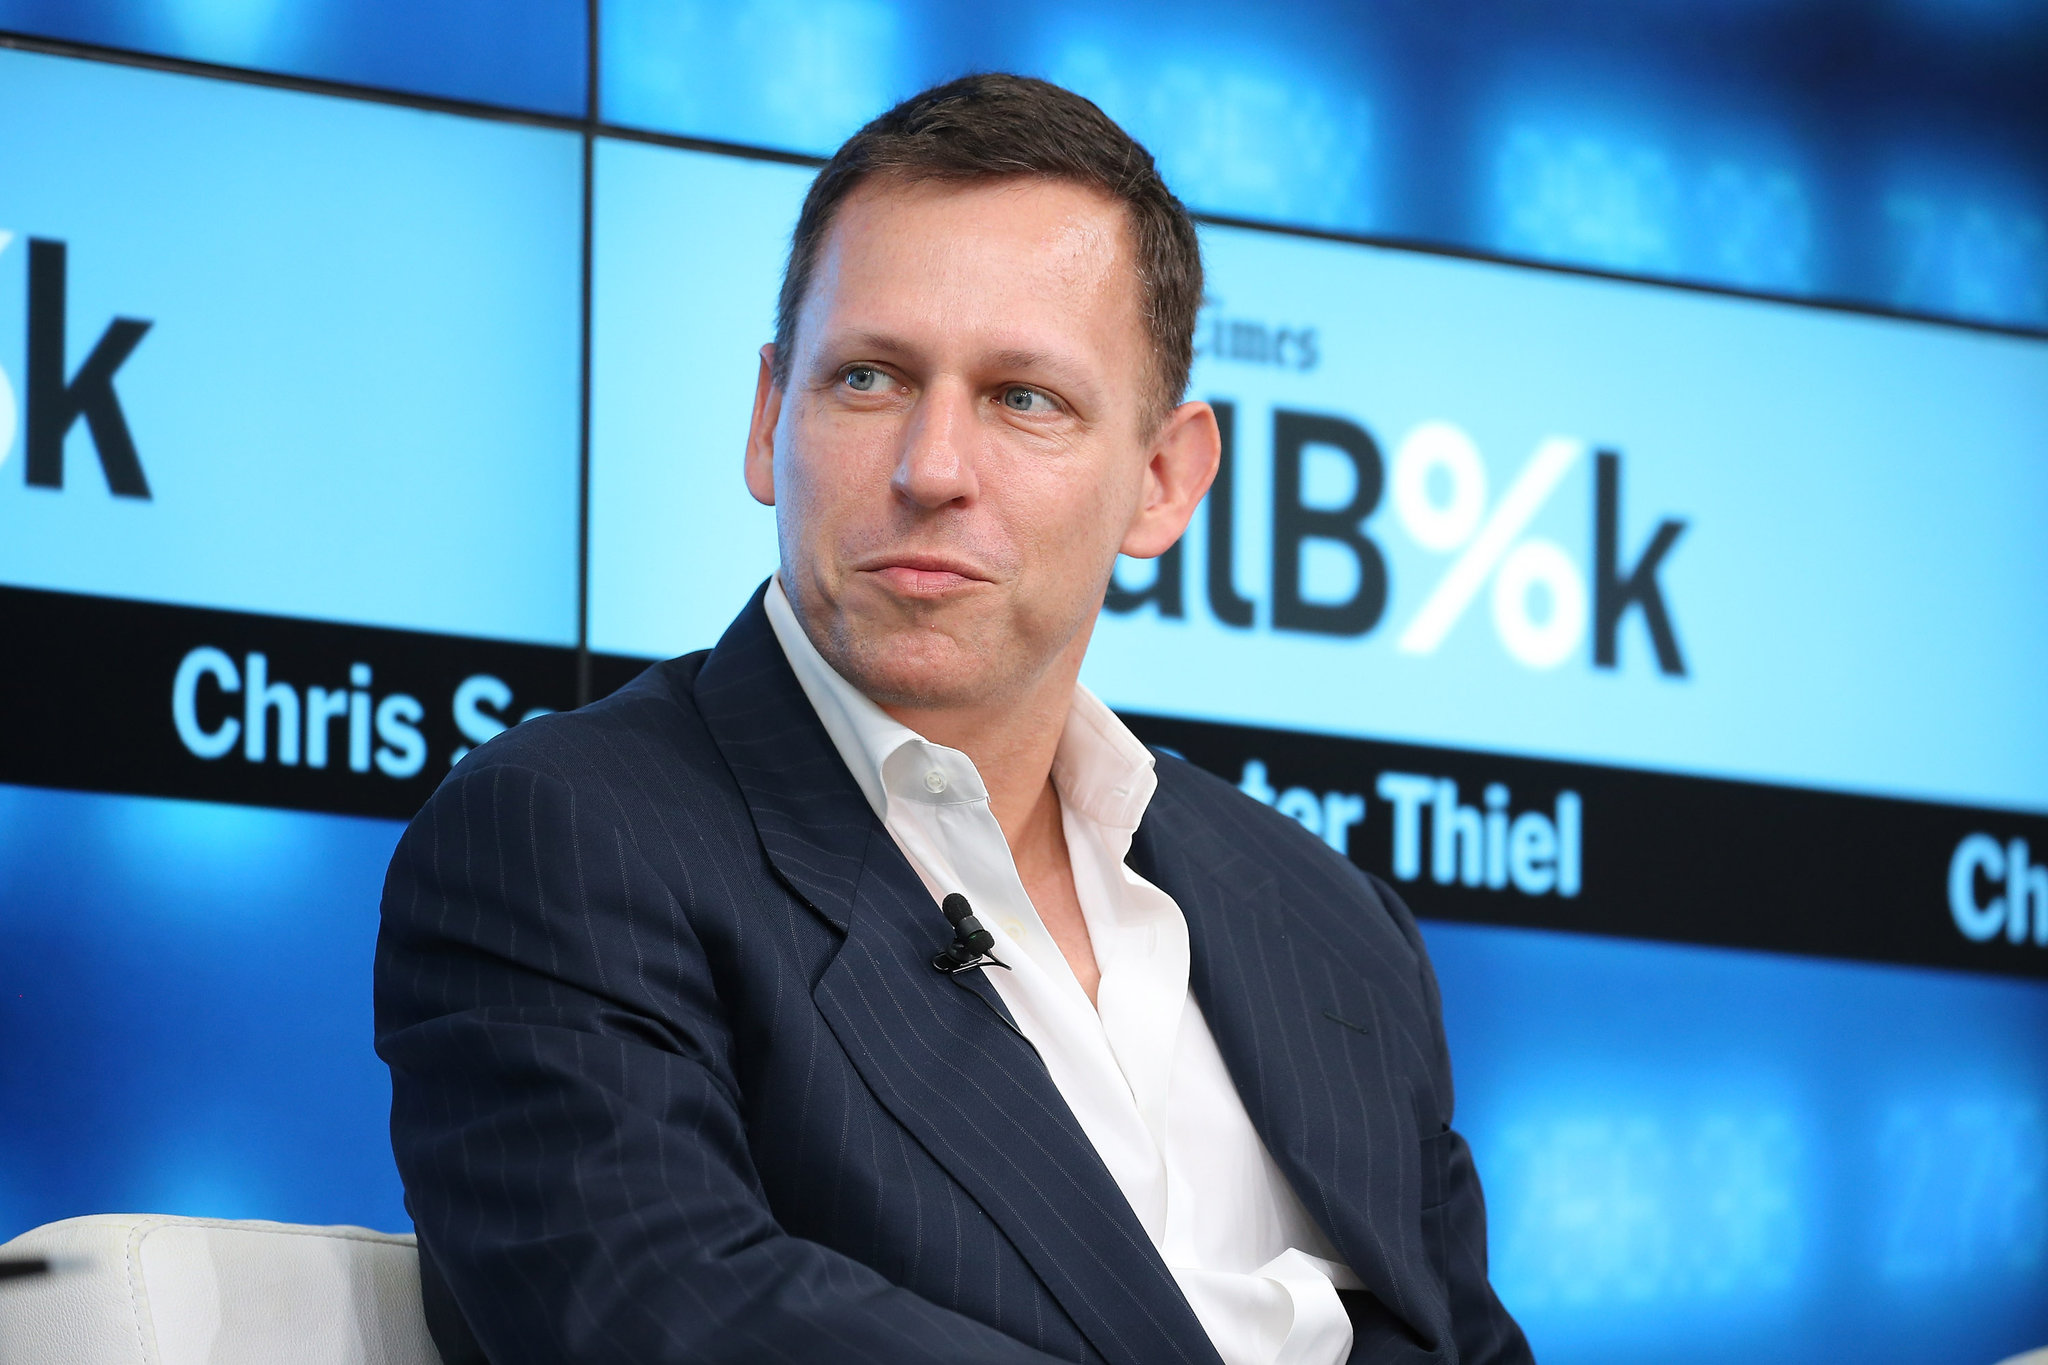 Peter Thiel Is Said to Bankroll Hulk Hogan's Suit Against Gawker